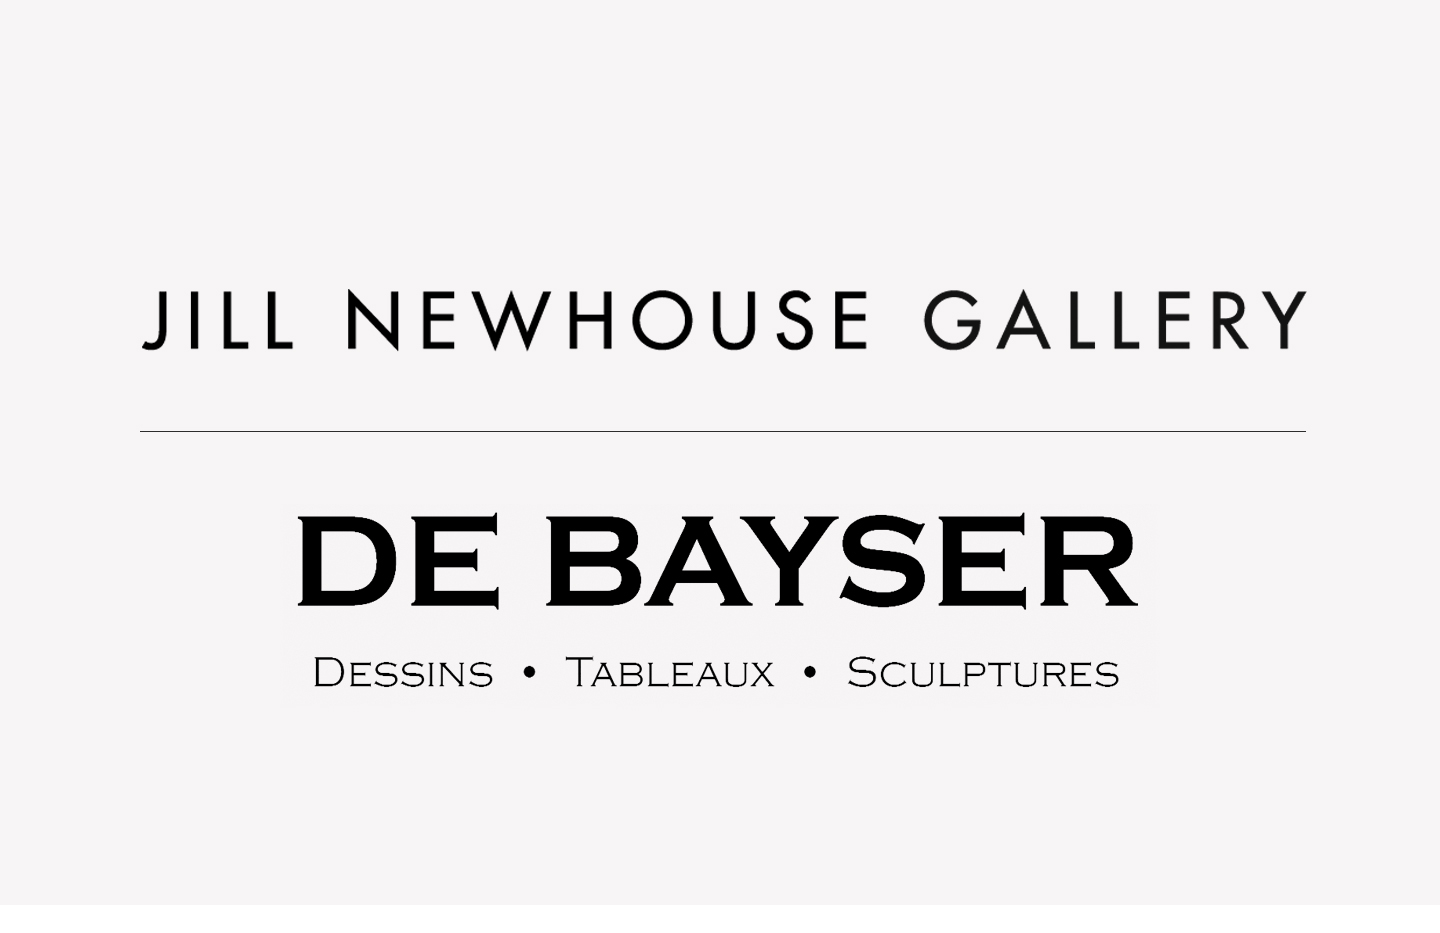 Jill Newhouse & De Bayser Gallery New York